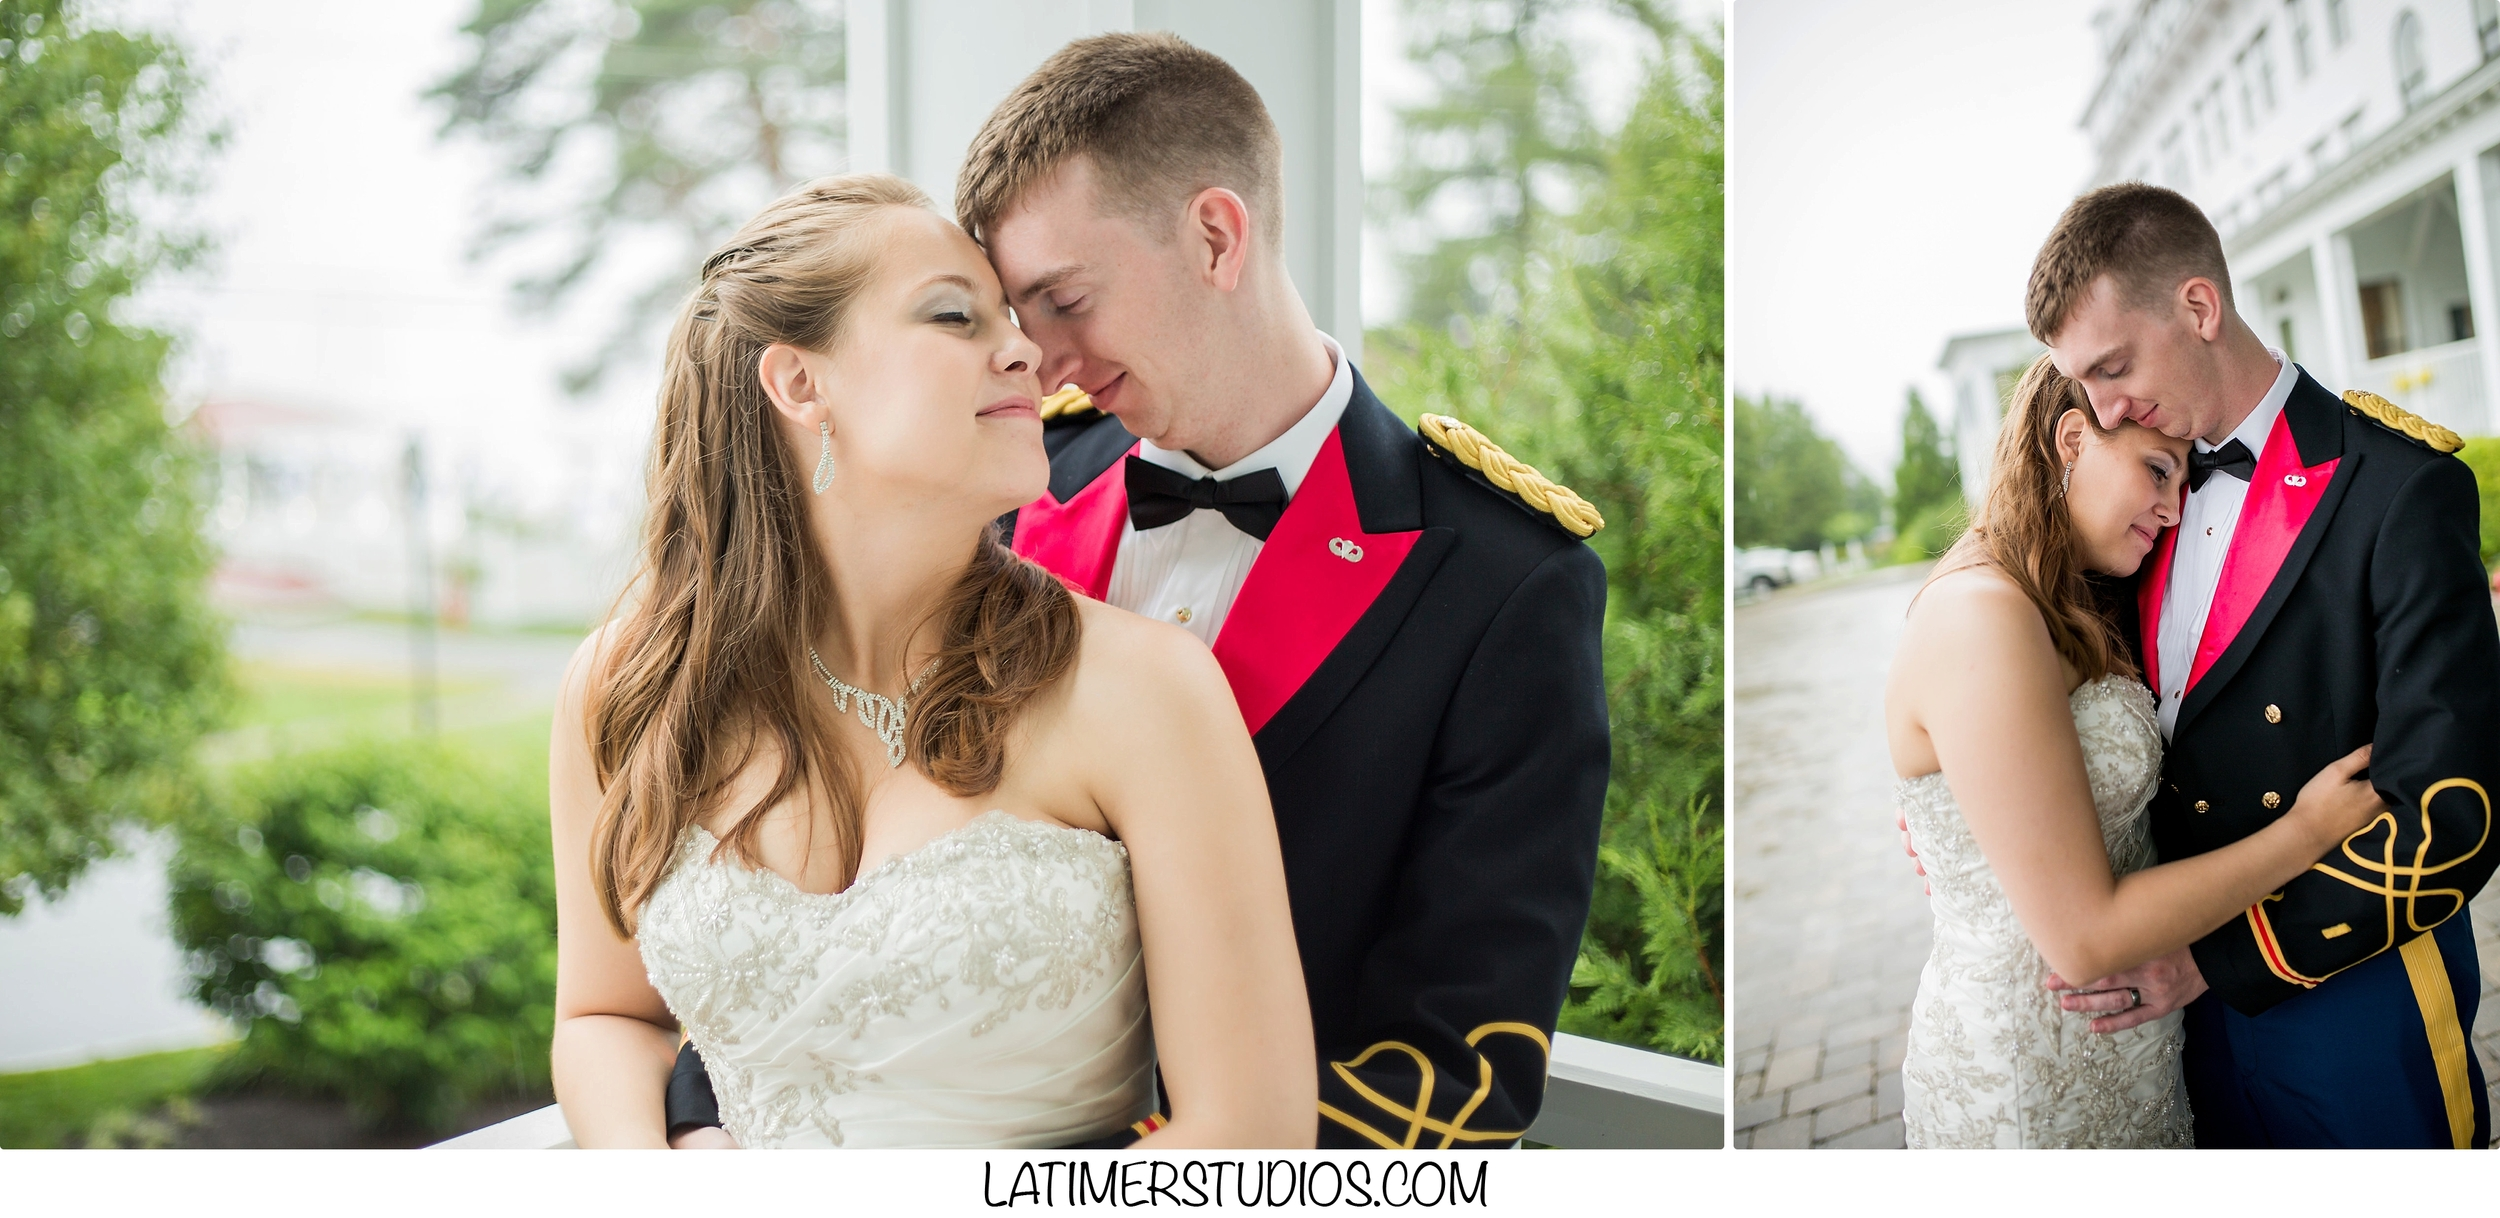 Latimer Studios Photography capturing a bride and groom at Wentworth by the Sea in Rye NH